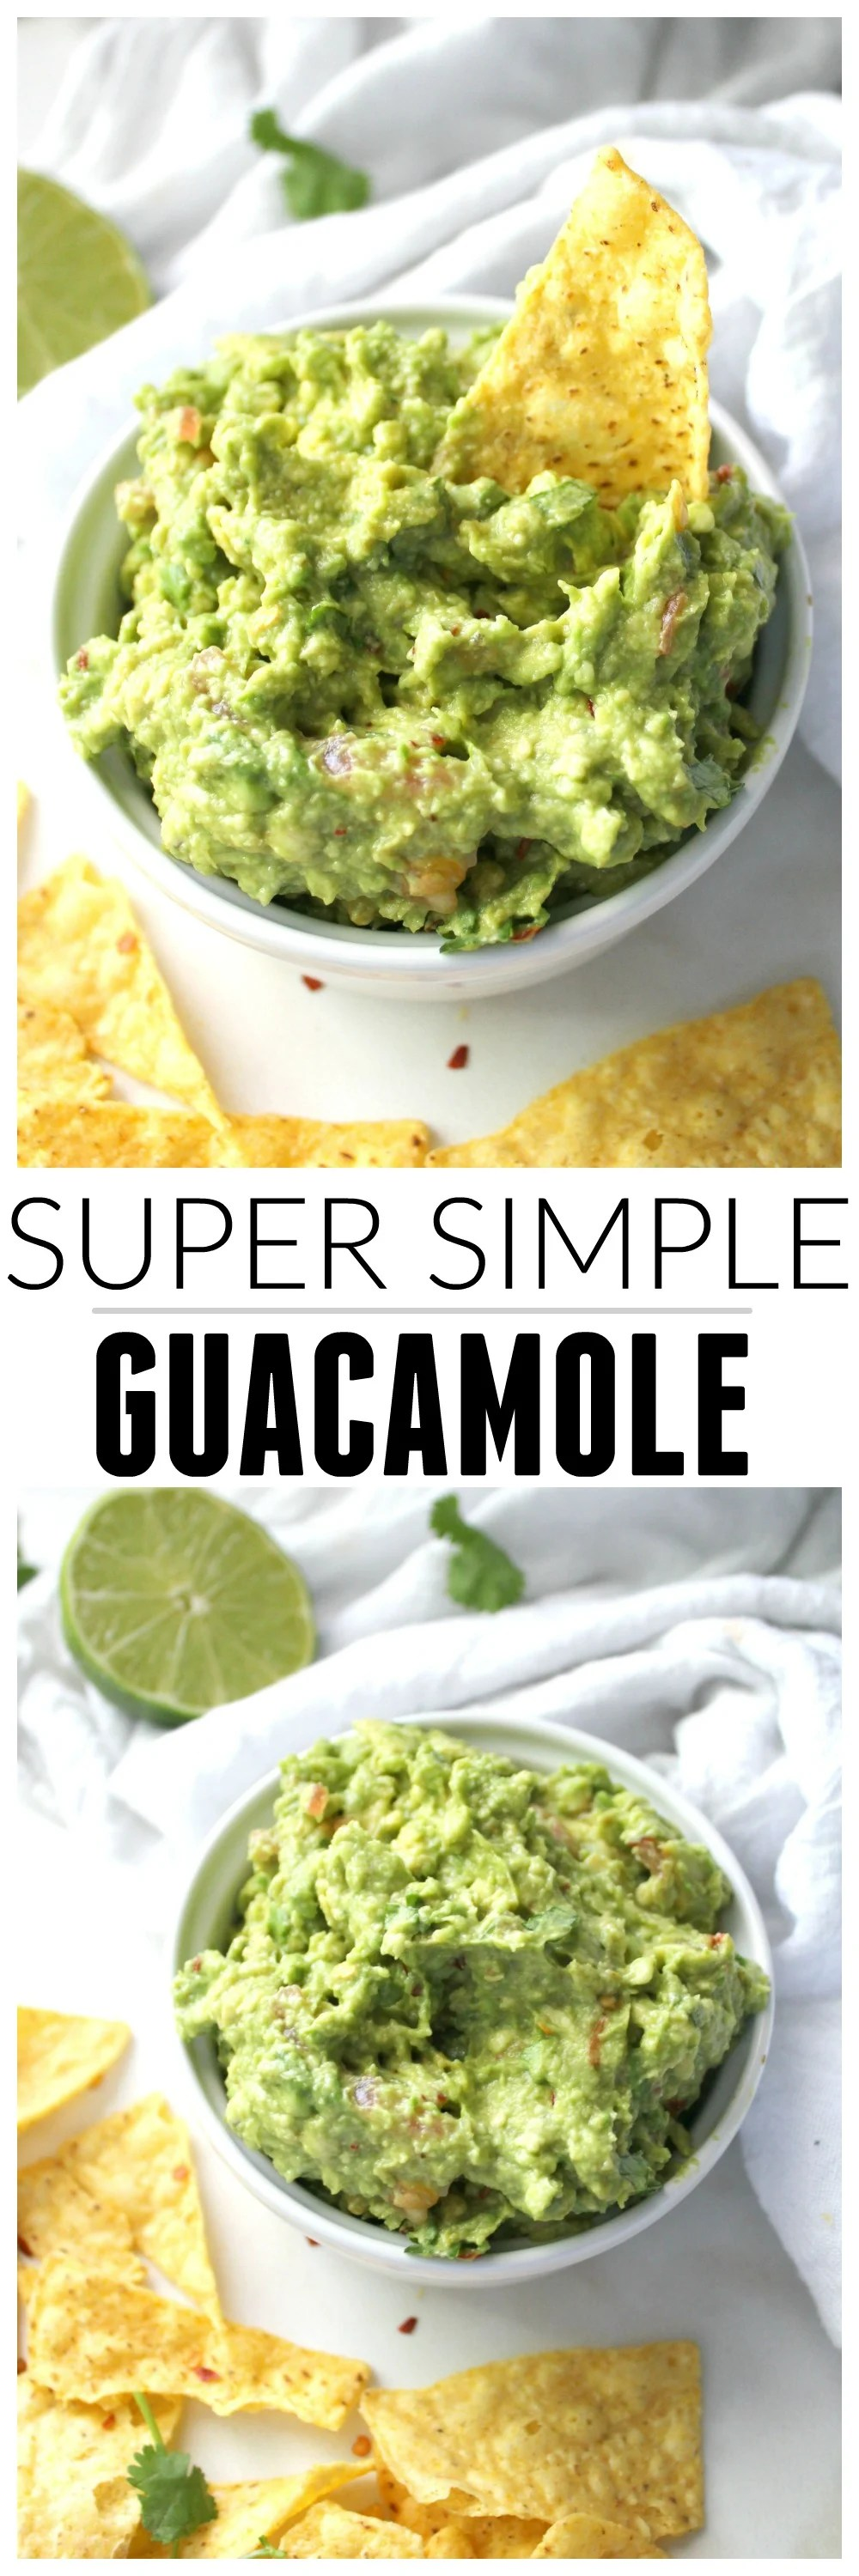 Who said guac needs to be complicated? This Super Simple Guacamole is quick, delicious and doesn't require any crazy ingredients! | ThisSavoryVegan.com